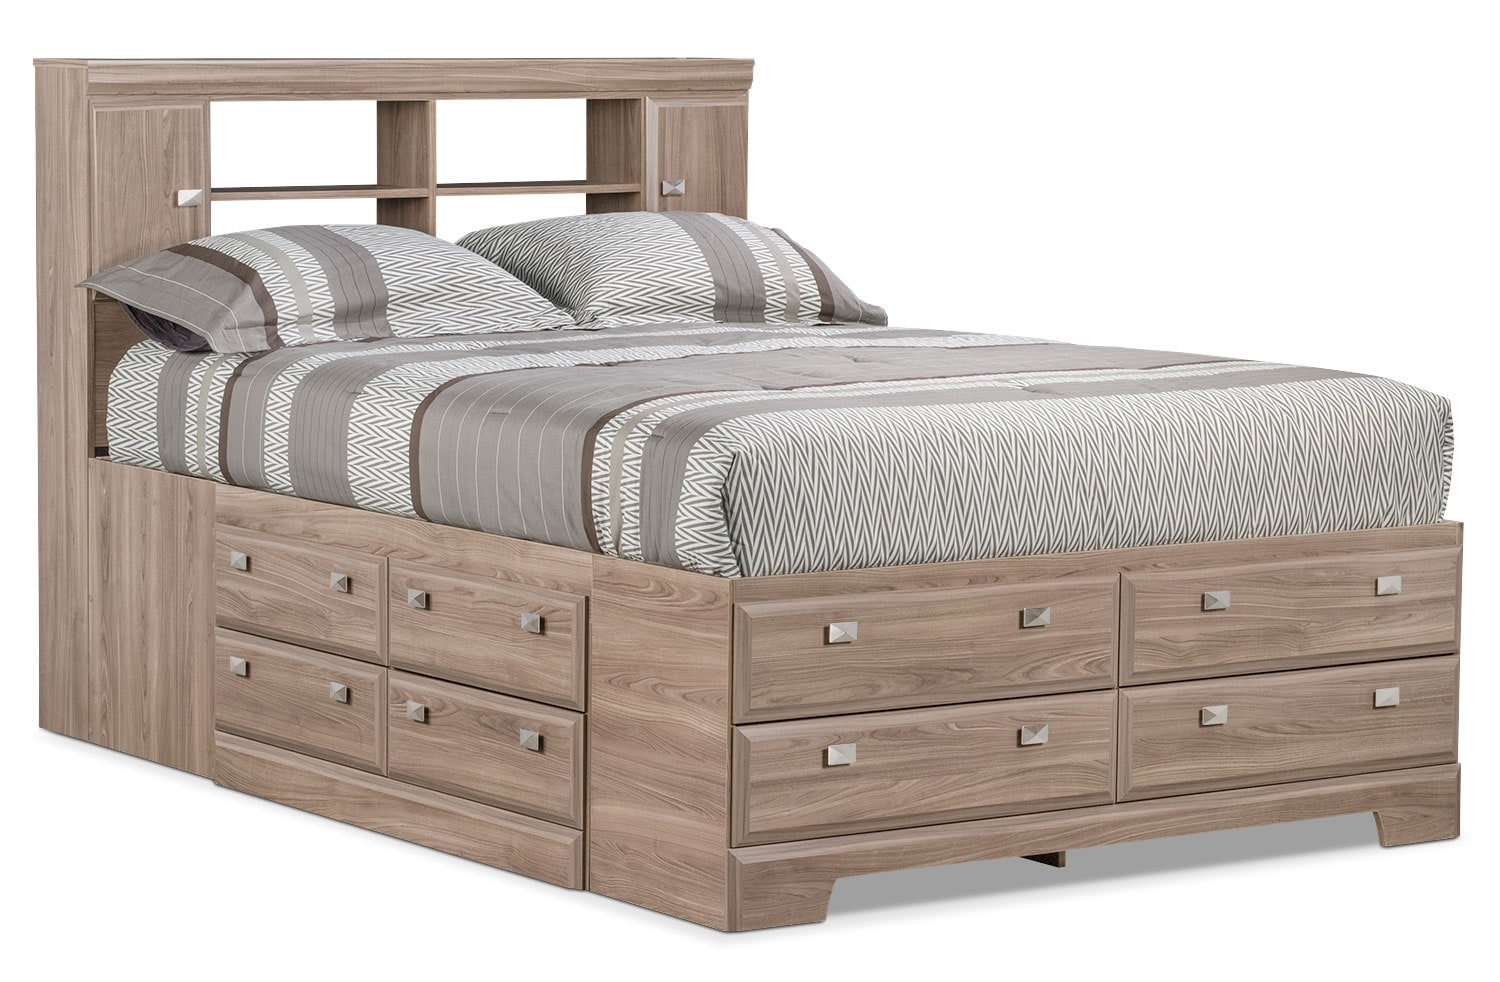 Bedroom Furniture - Yorkdale Light Queen Bookcase Storage Bed